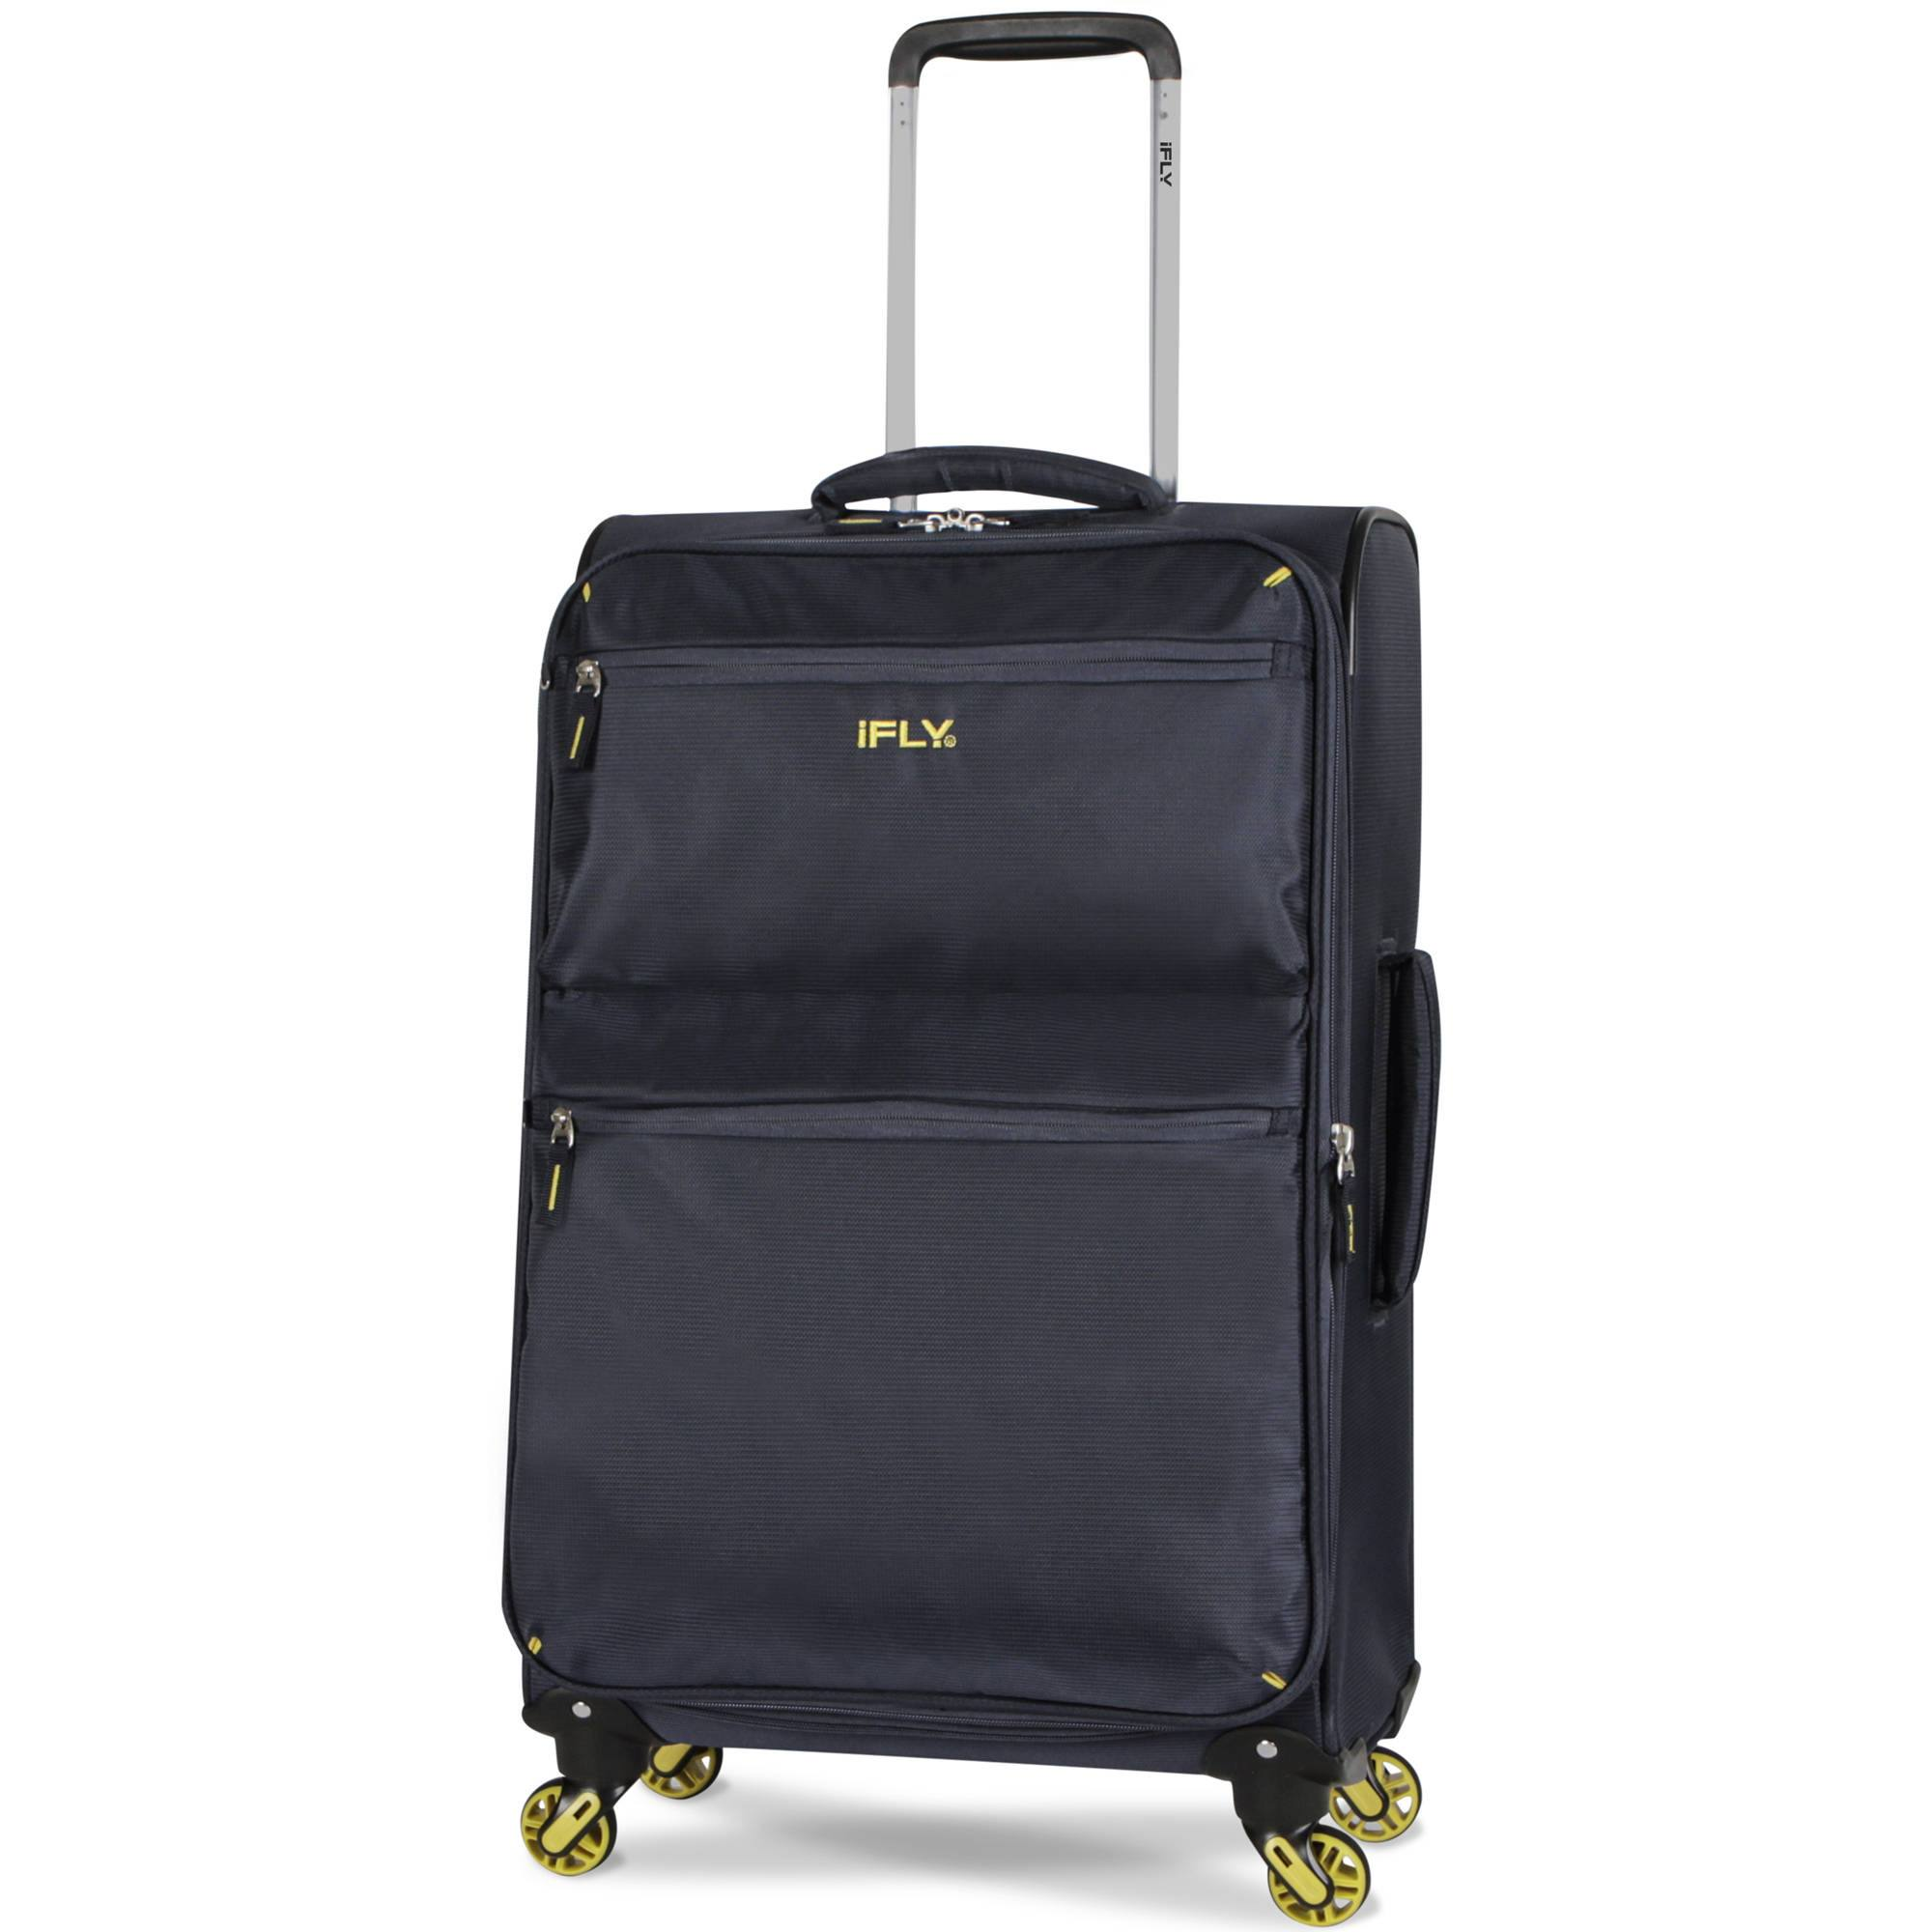 Ifly Soft Sided Luggage Ezglider